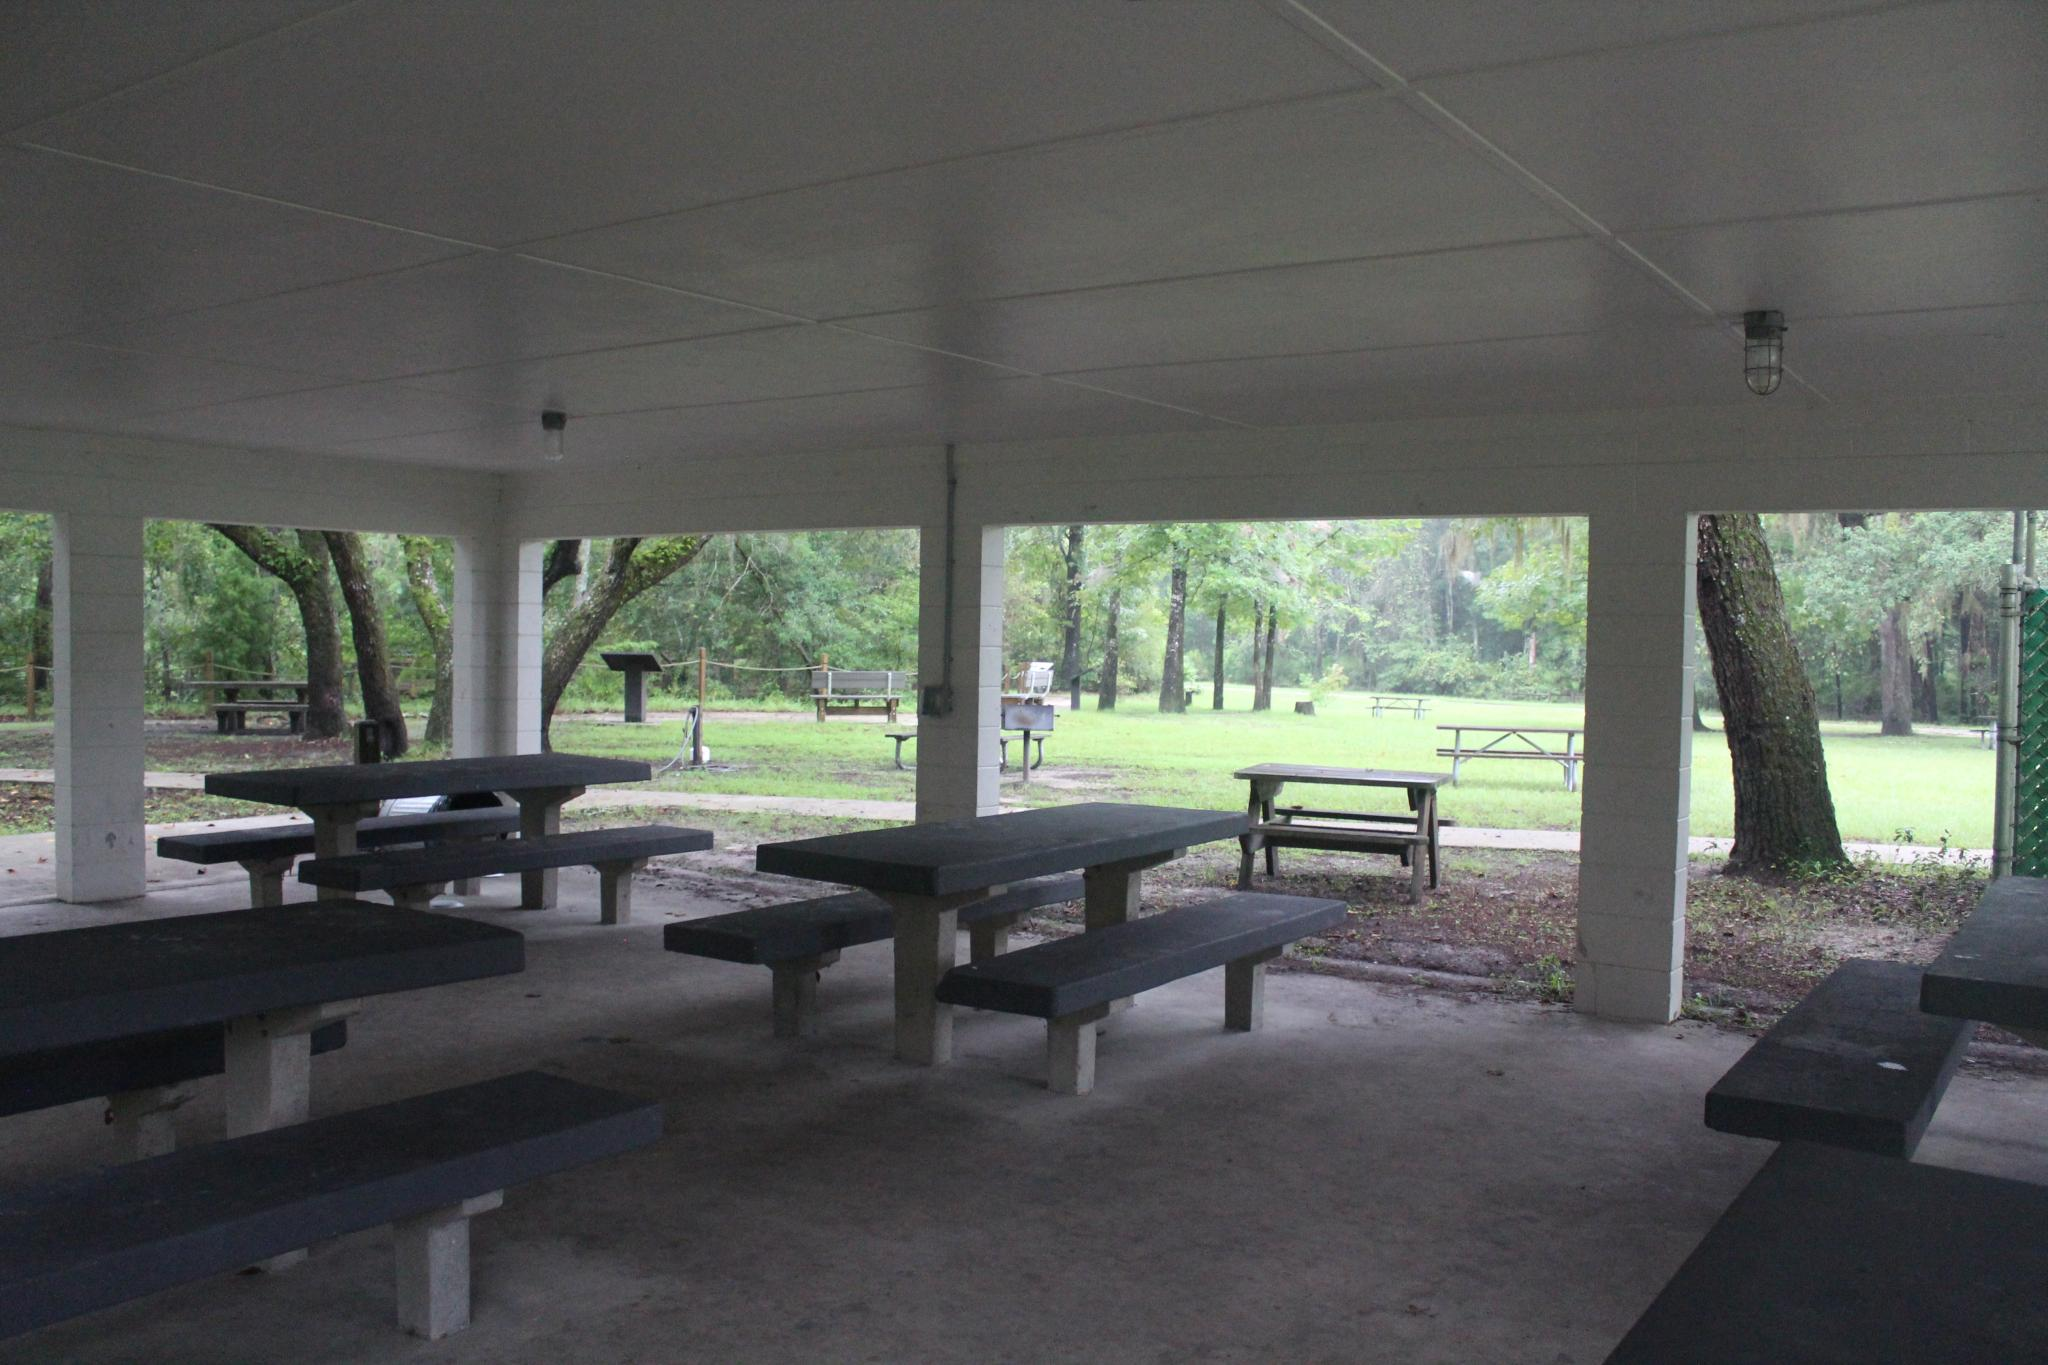 Viewing Are Favorite Pastimes For Visitors. The Picnic Area Has Tables,  Grills And Two Pavilions, Which Are Popular For Family Reunions And Parties.